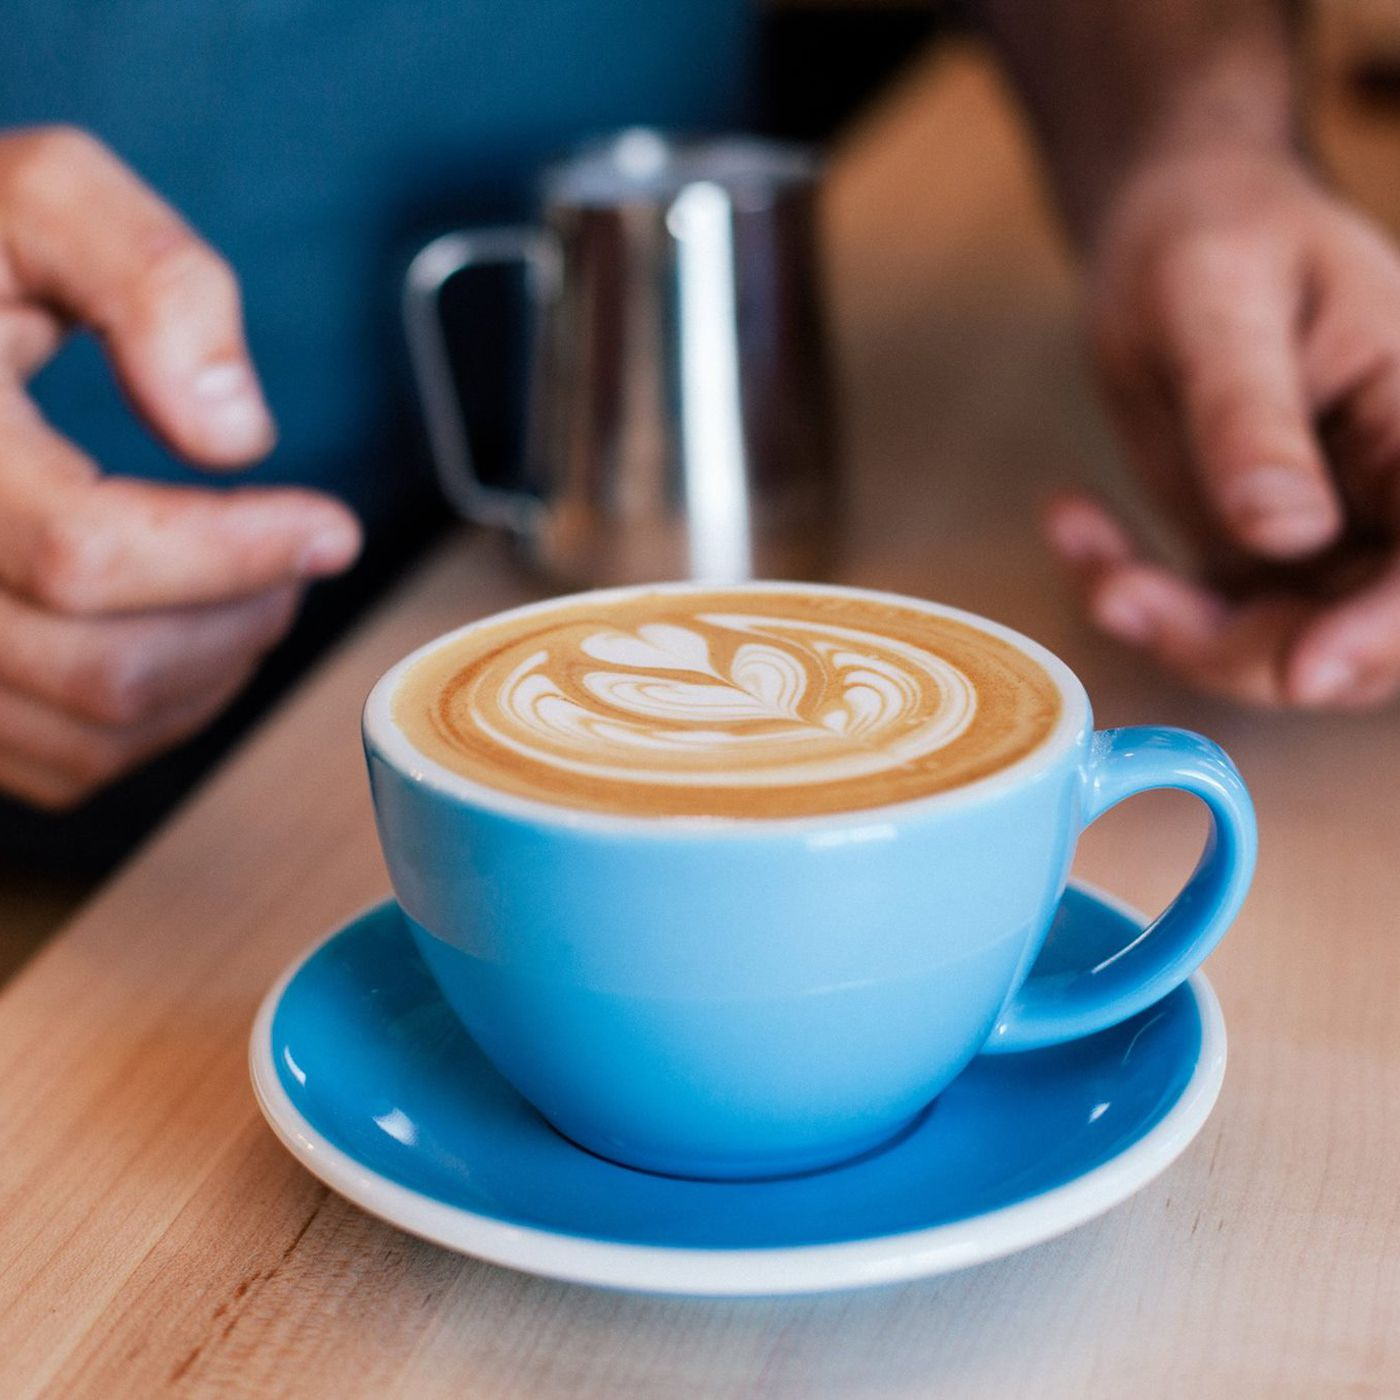 Best Coffee Shops in Austin, Winter 2019 - Eater Austin on fishing map, ice cream shop map, coffee facebook, bank map, parking map, church map, restaurant map, cafeteria map, playground map, hotel map, apartment complex map, beach map, gas station map, tavern map, pizza map, shopping map, garden map, casino map, supermarket map,